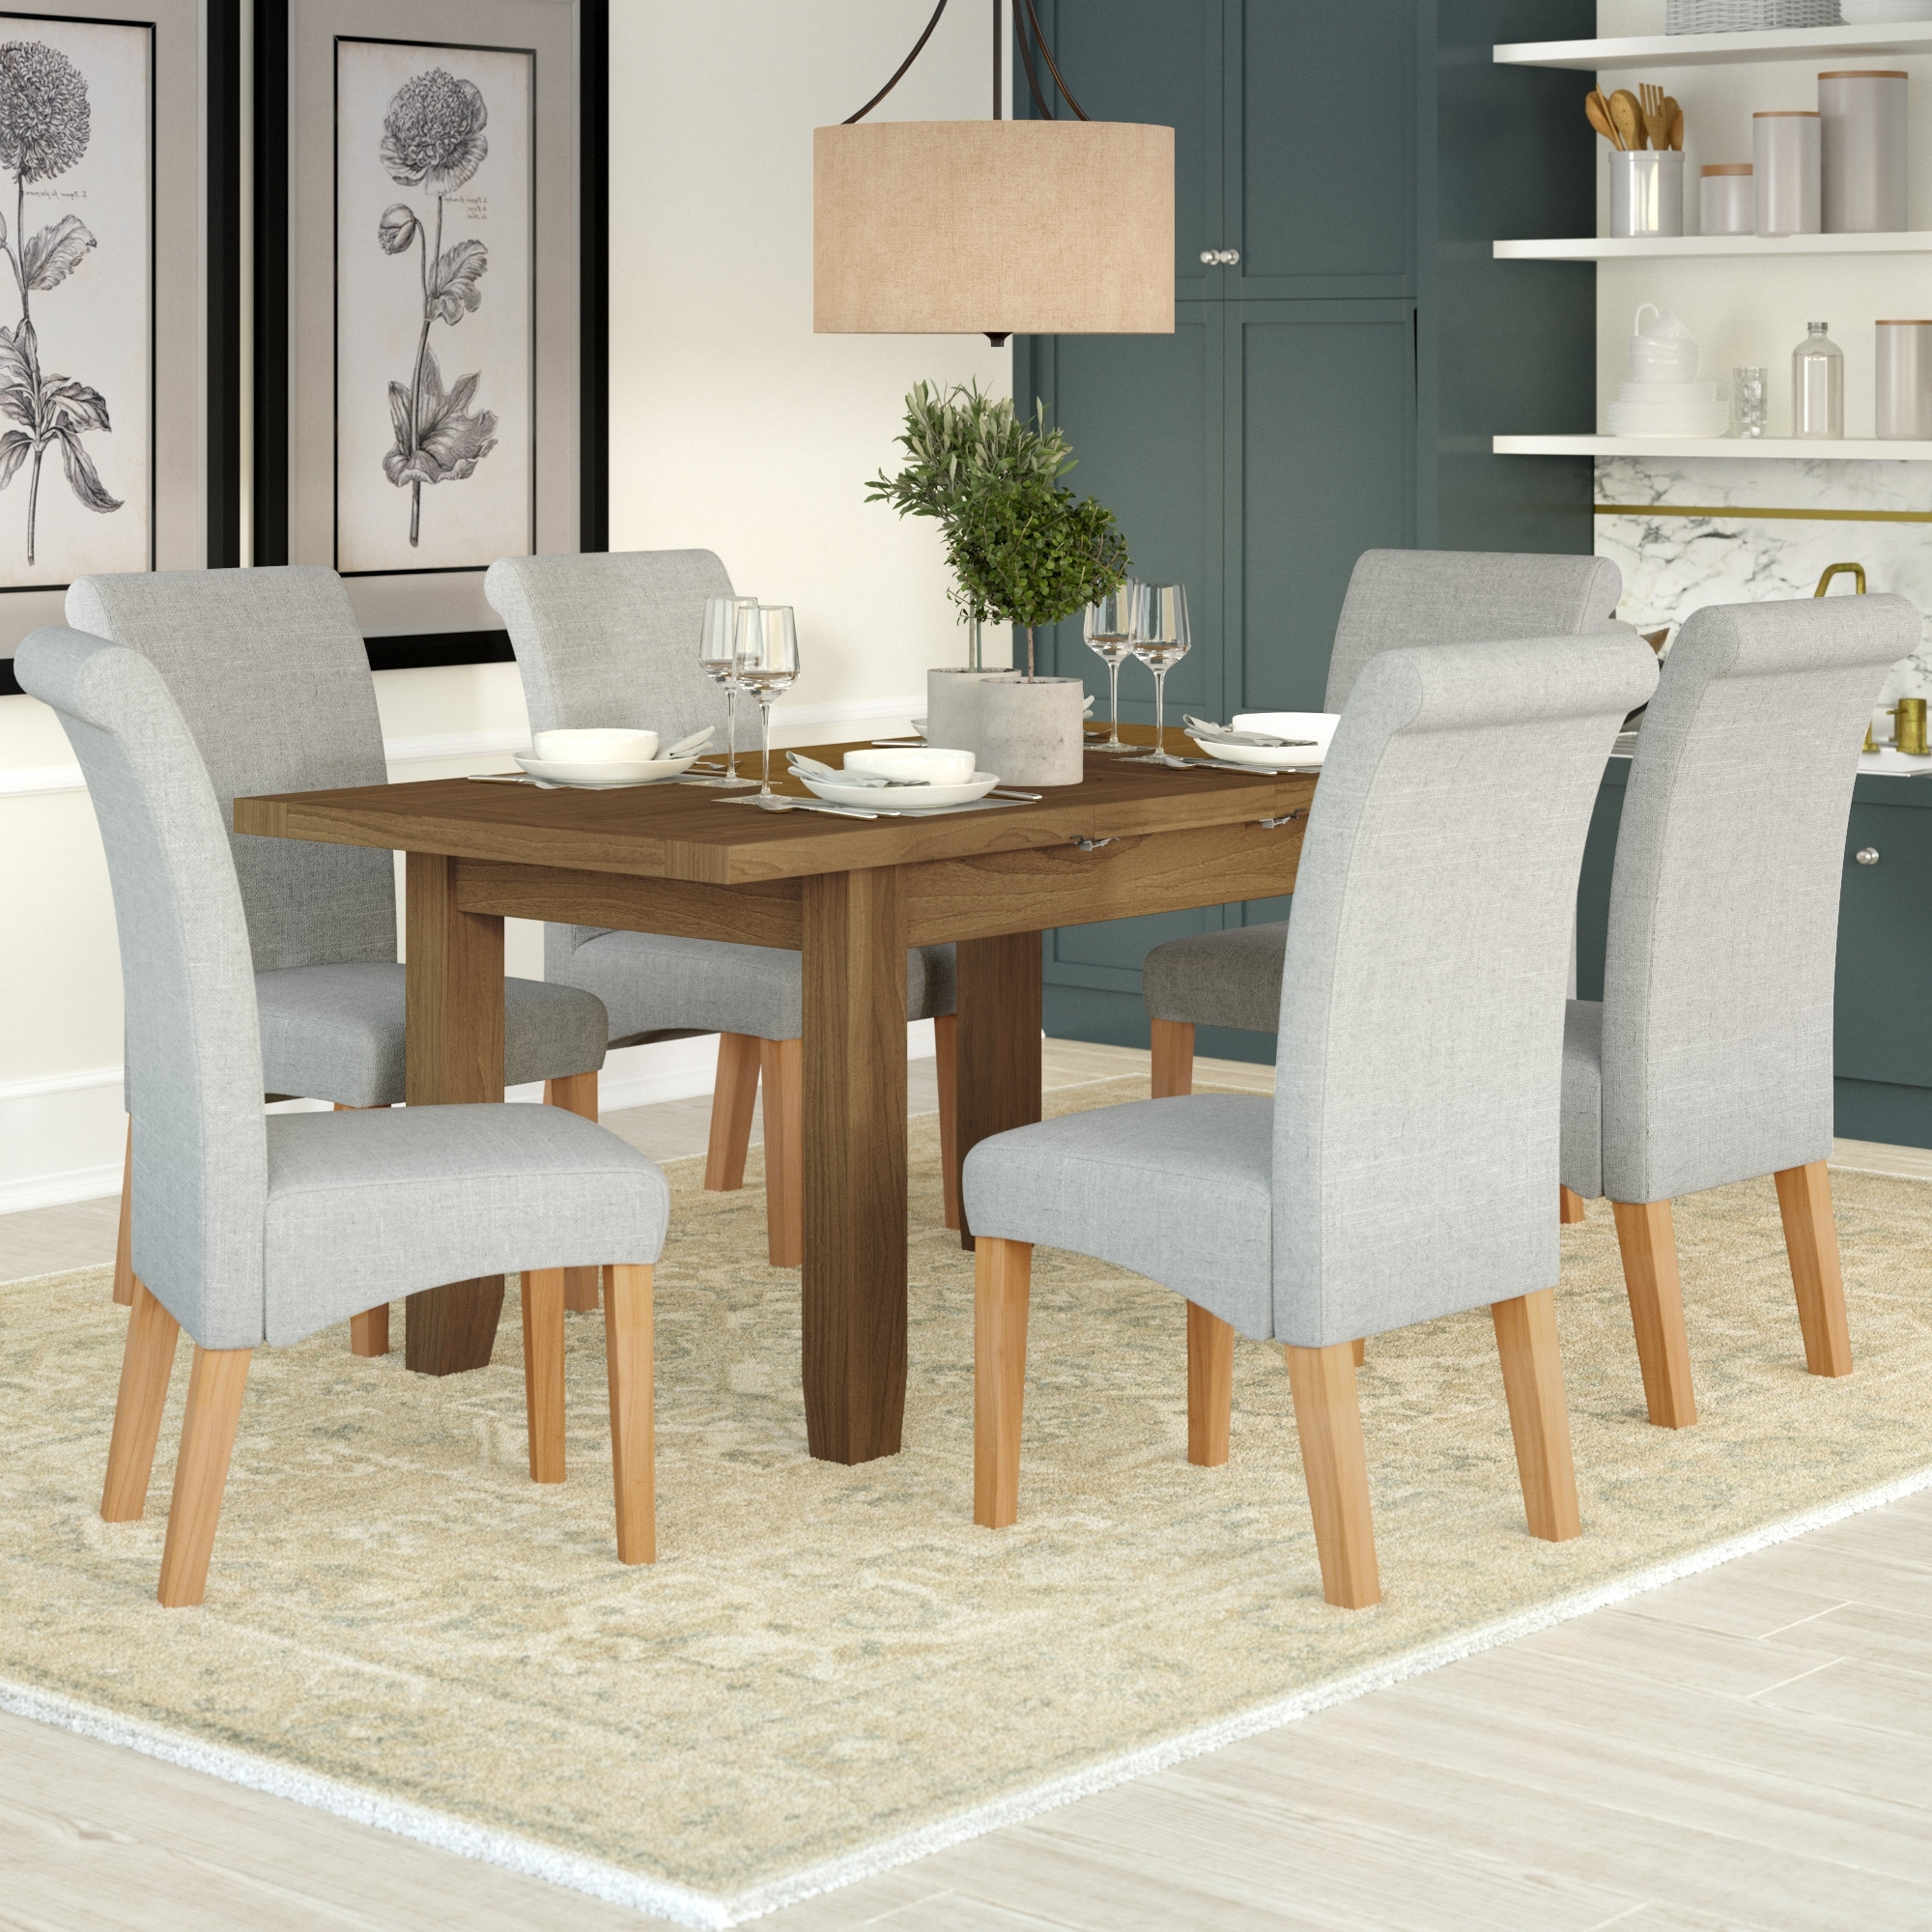 Dining Extending Tables And Chairs for Recent Three Posts Berwick Extendable Dining Table And 6 Chairs & Reviews